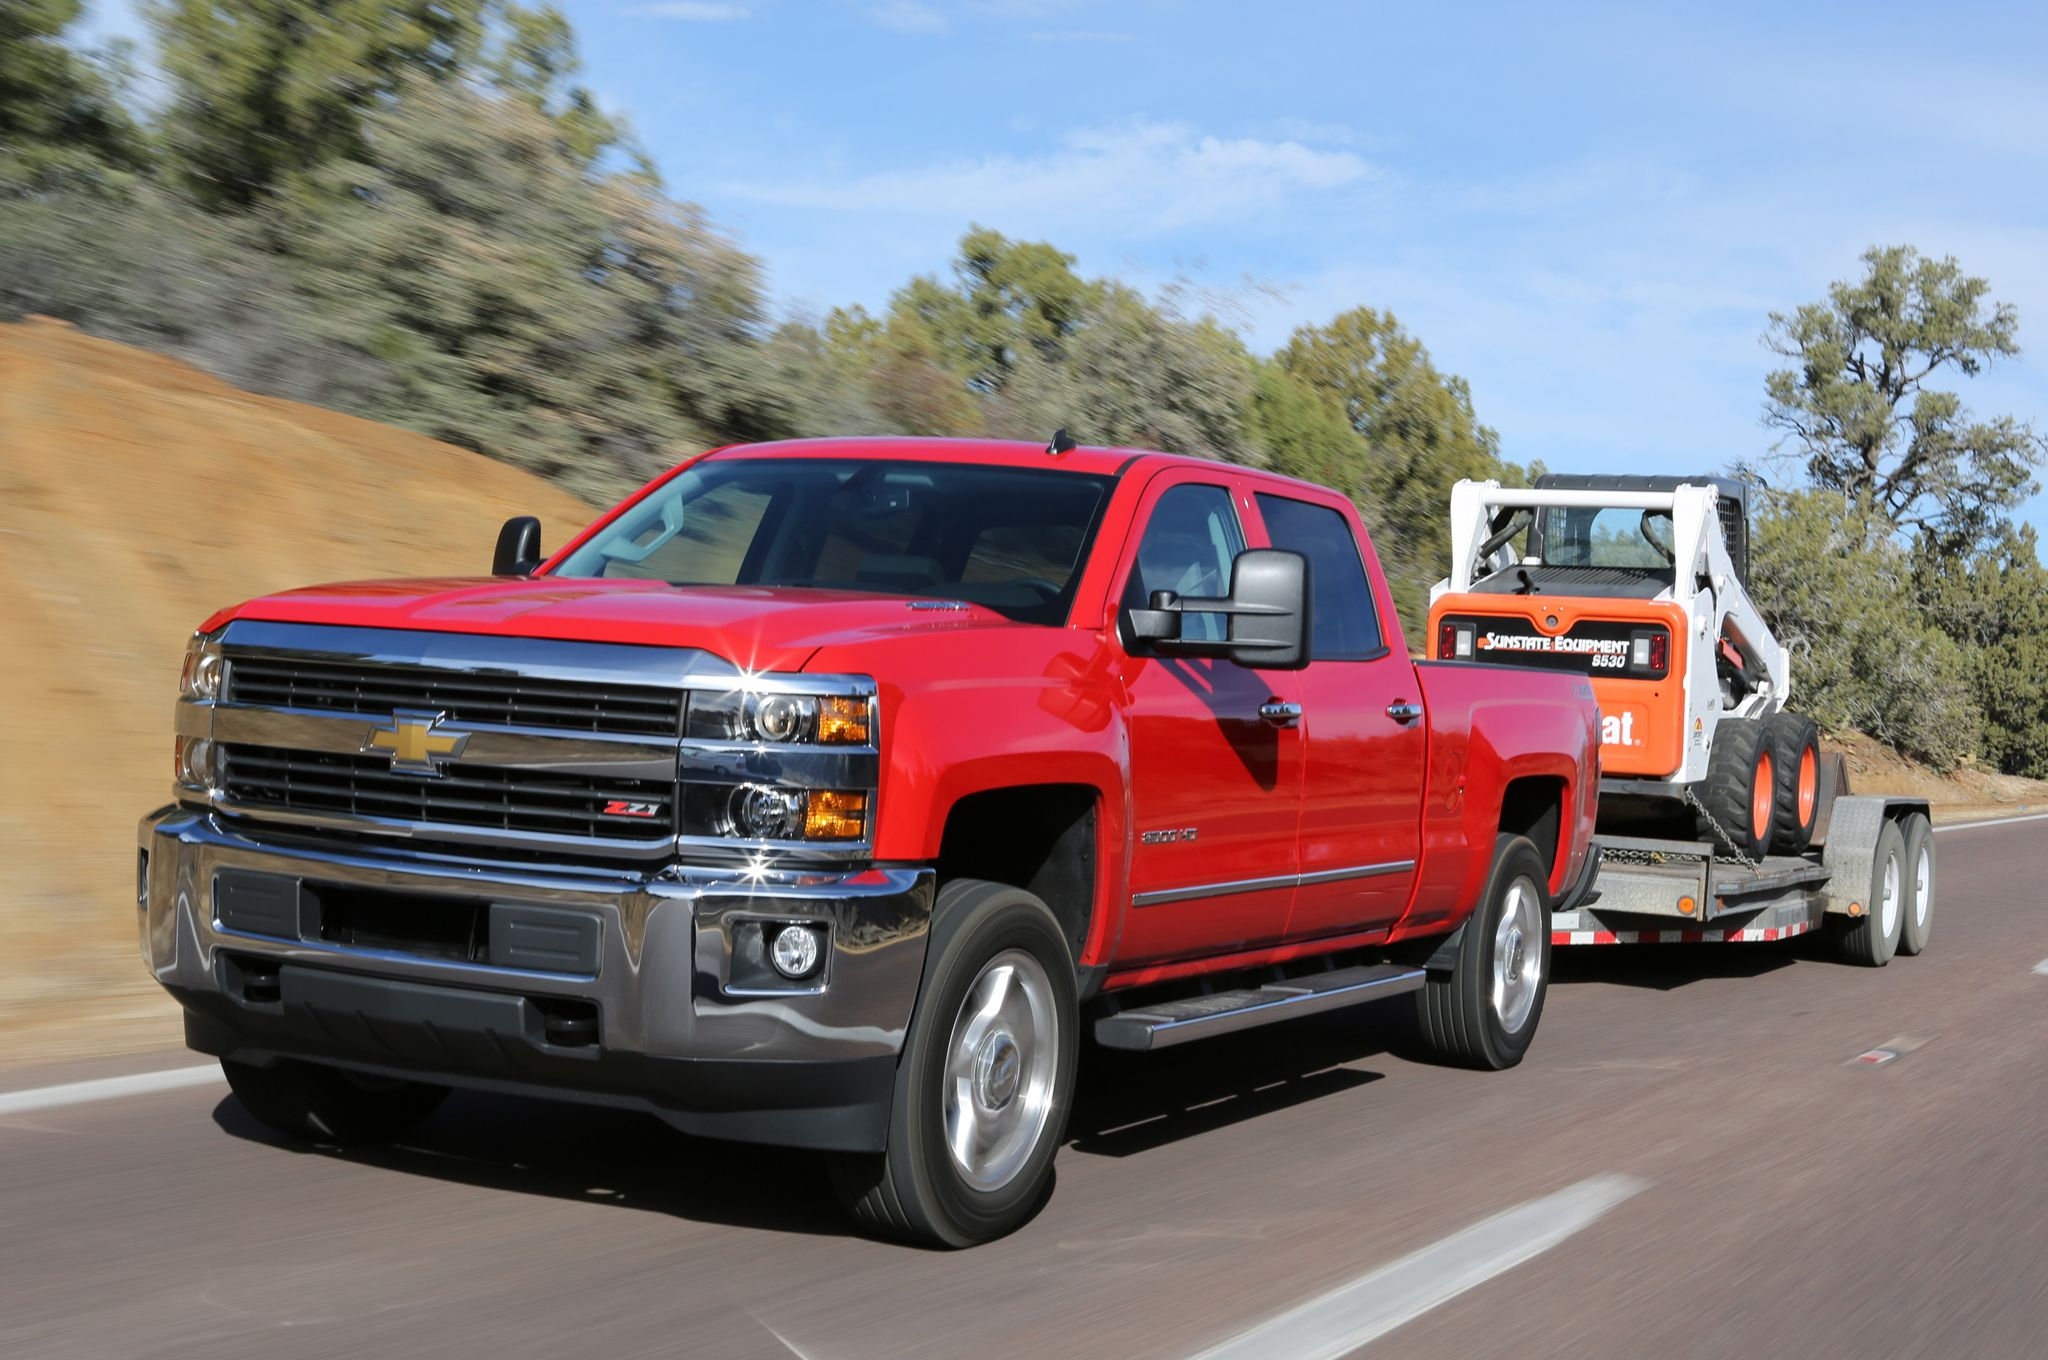 2020 Chevy Silverado 1500 Review, Pricing, and Specs ...